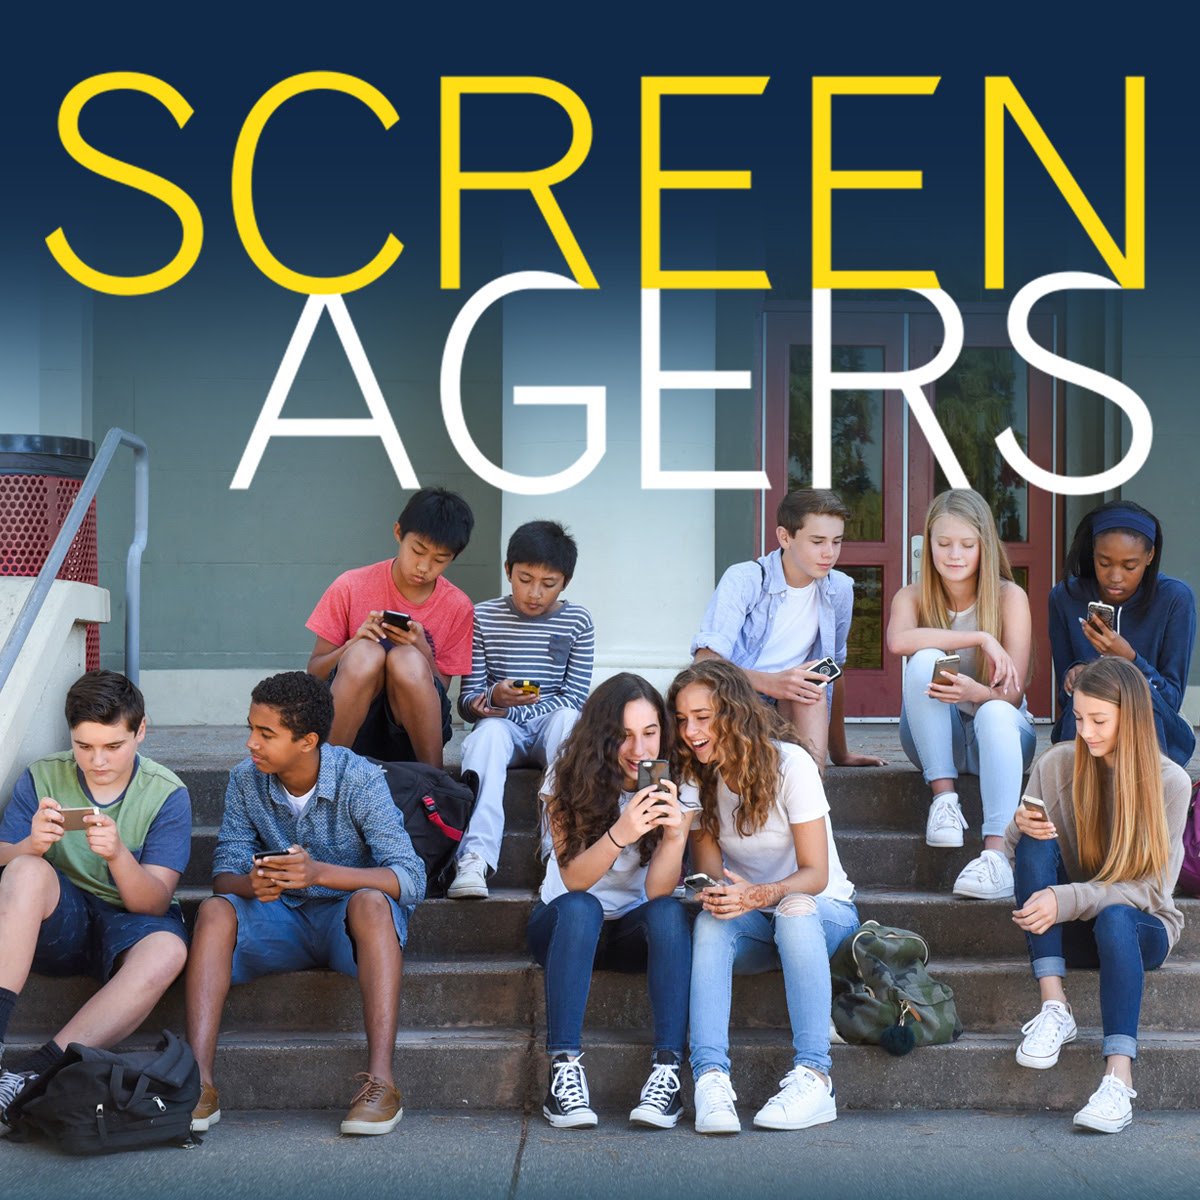 Screenagers Film Presented By Beth Haverim Shir Shalom